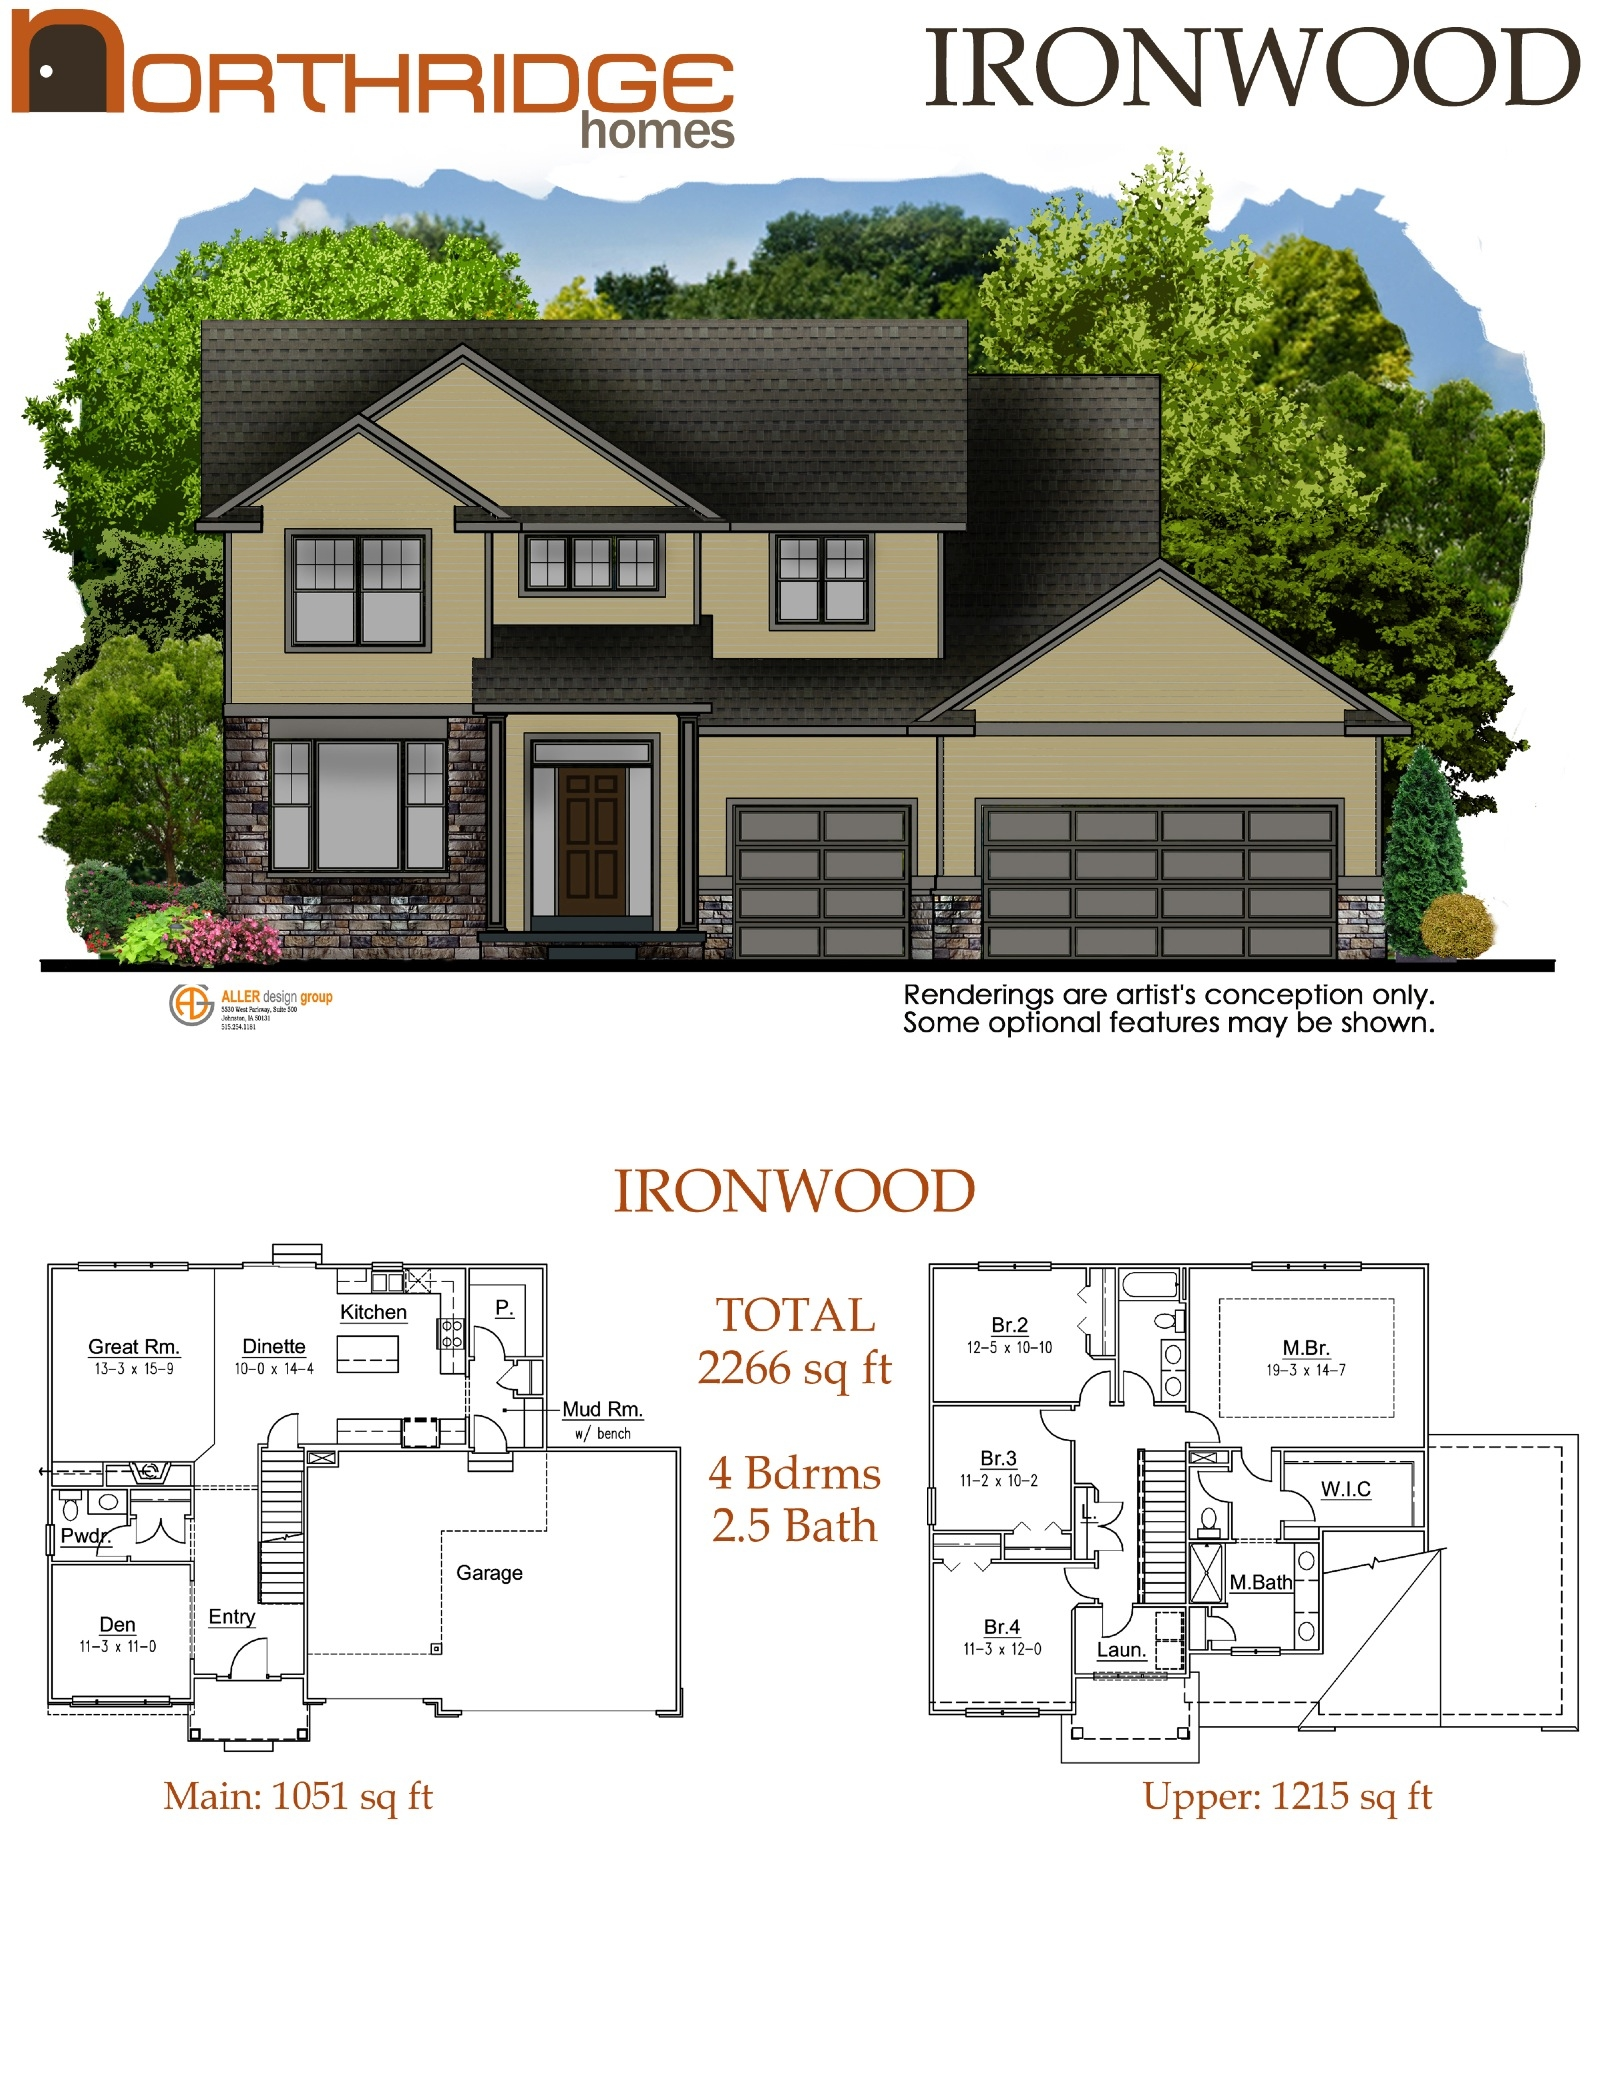 Des moines cars news videos images websites for Iowa home builders floor plans